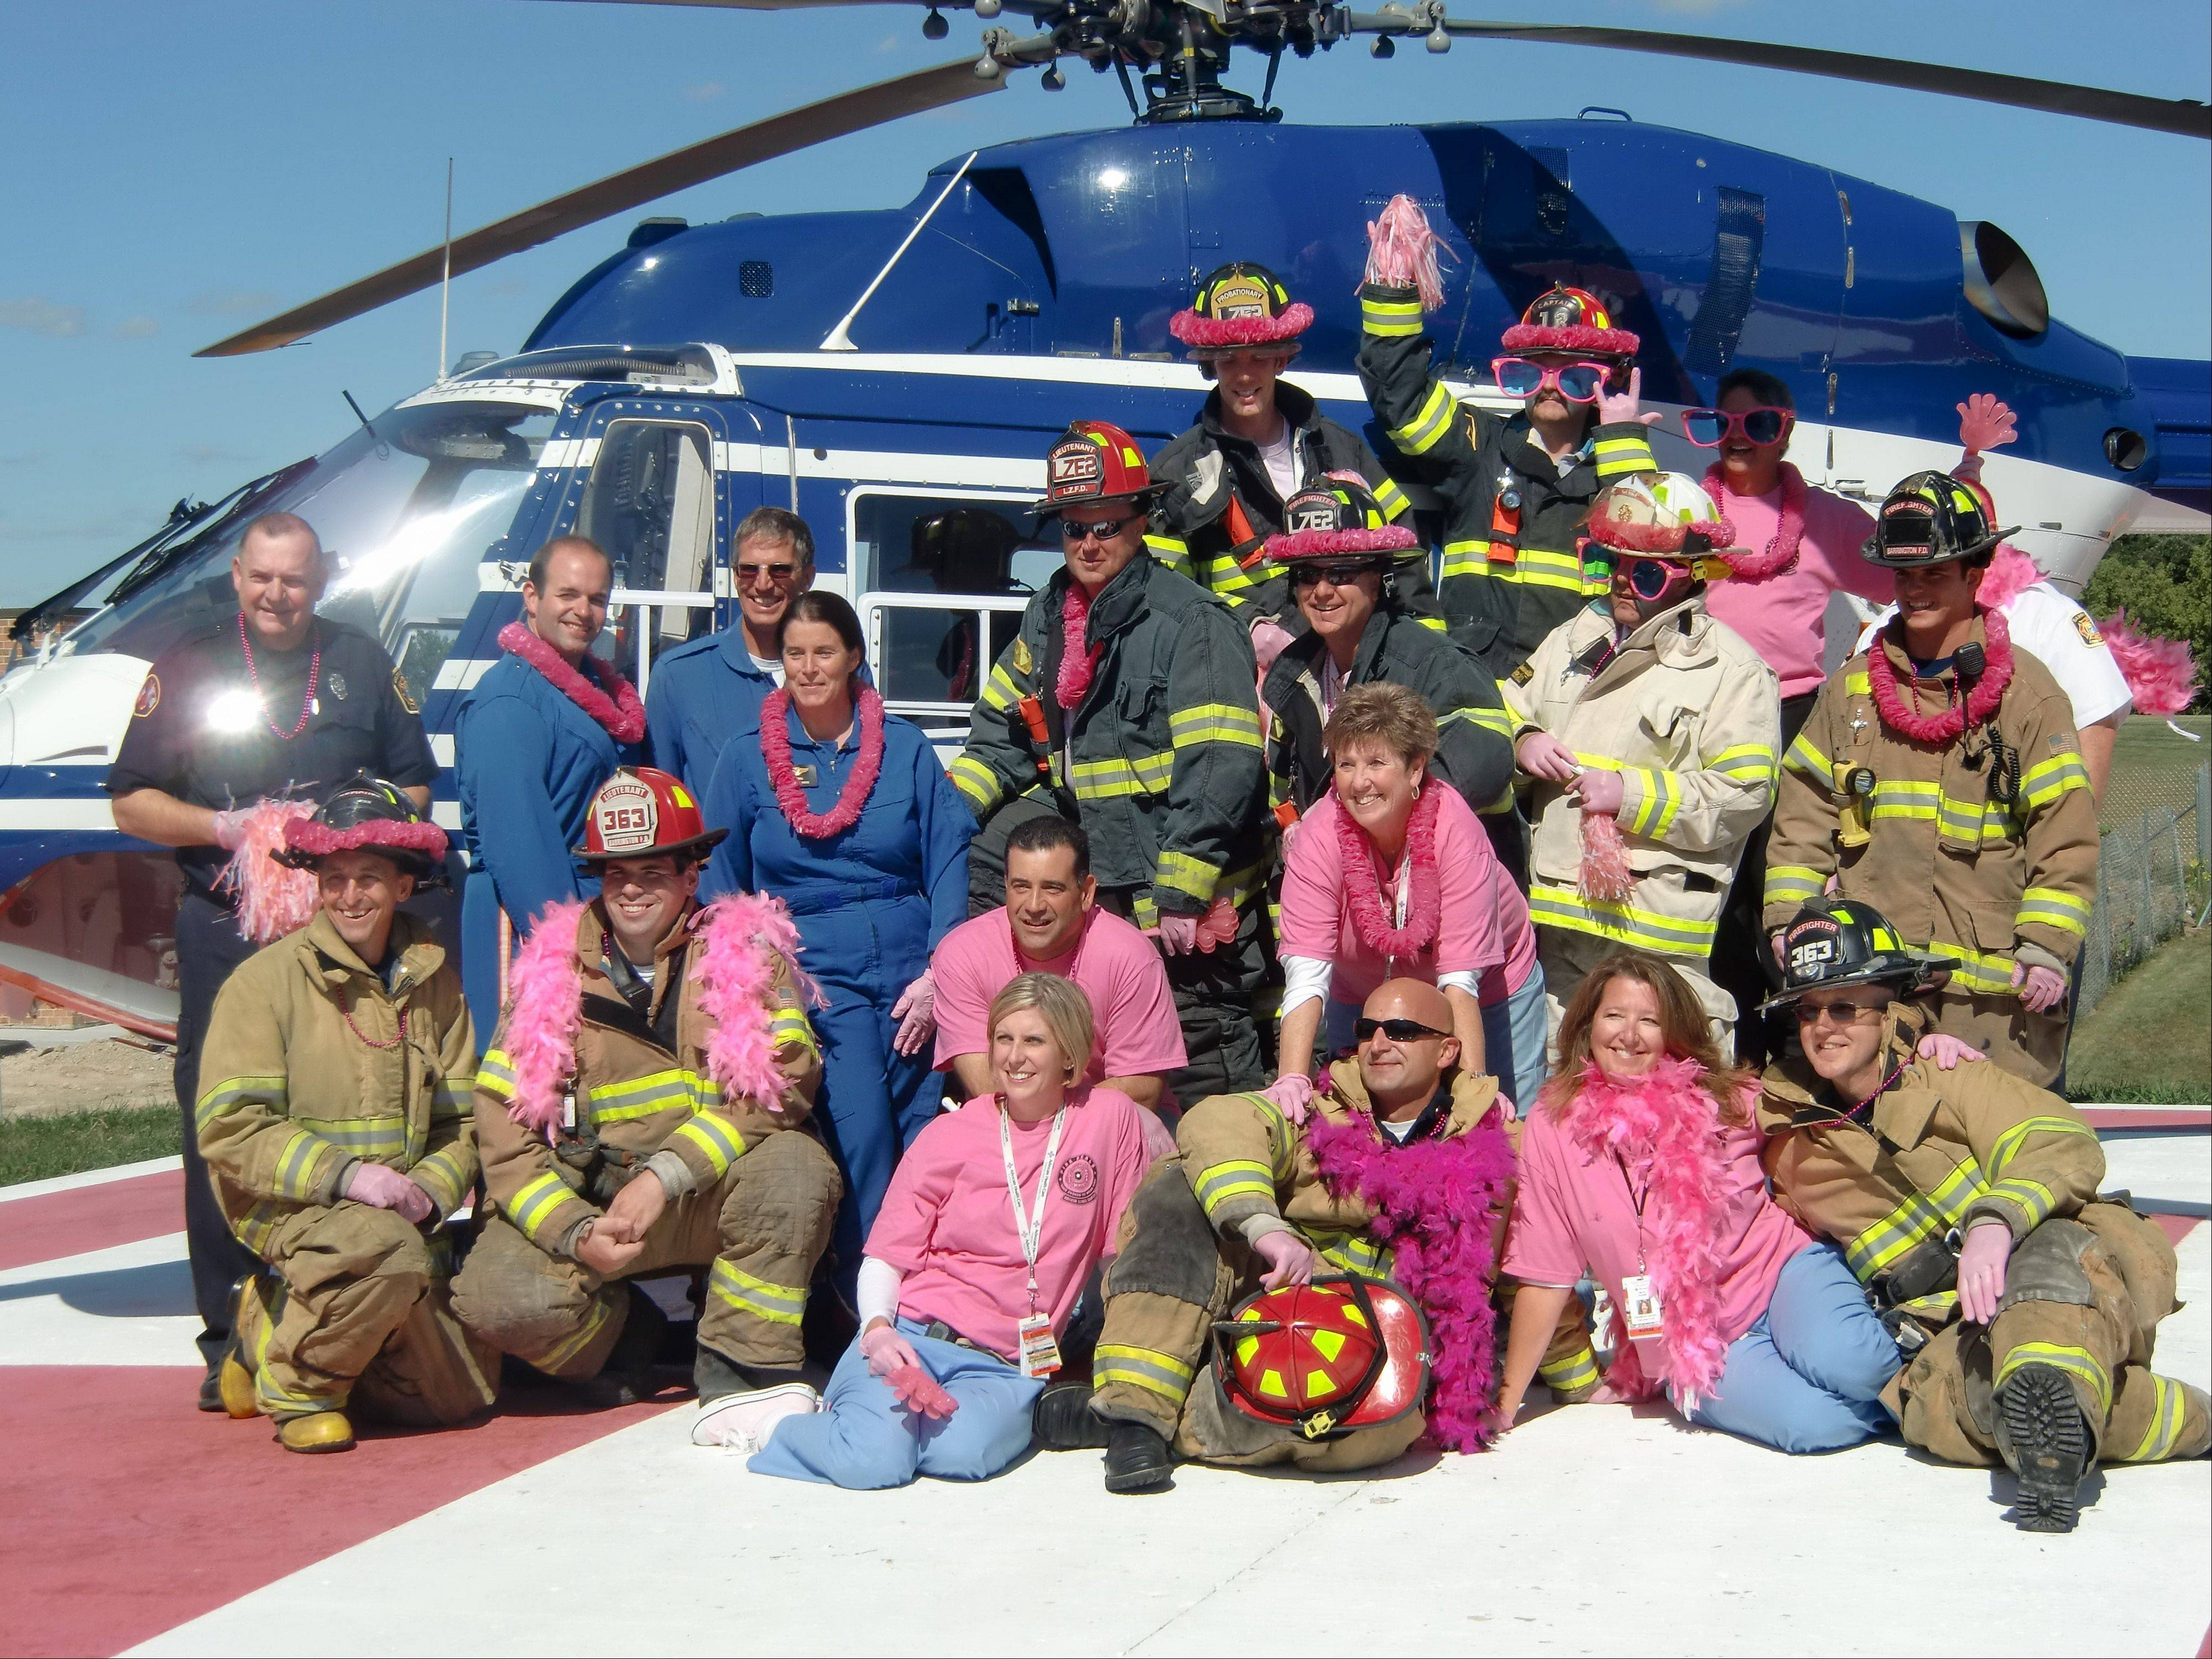 The Flight for Life helicopter from McHenry serves as the backdrop for firefighters and Good Shepherd Emergency Department staff participating in the video production.